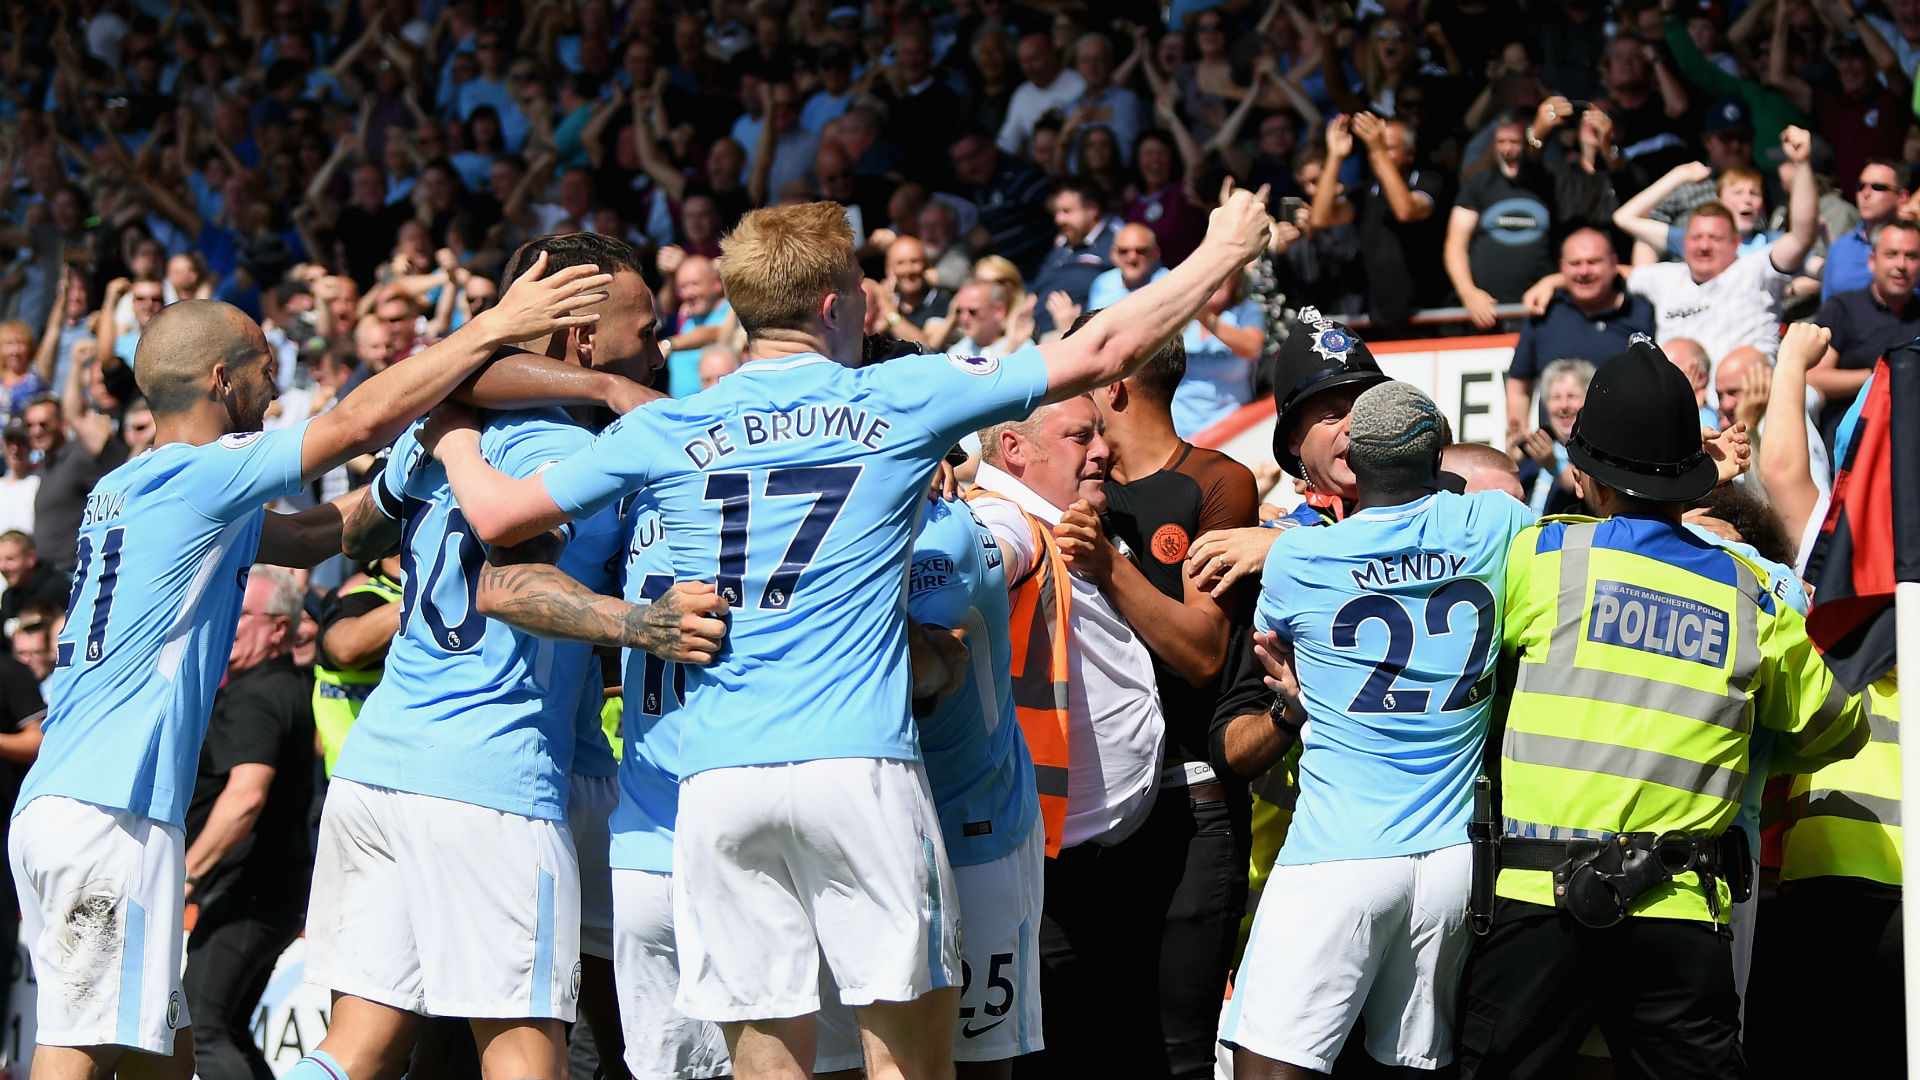 But two men are arrested after Man City goal celebration